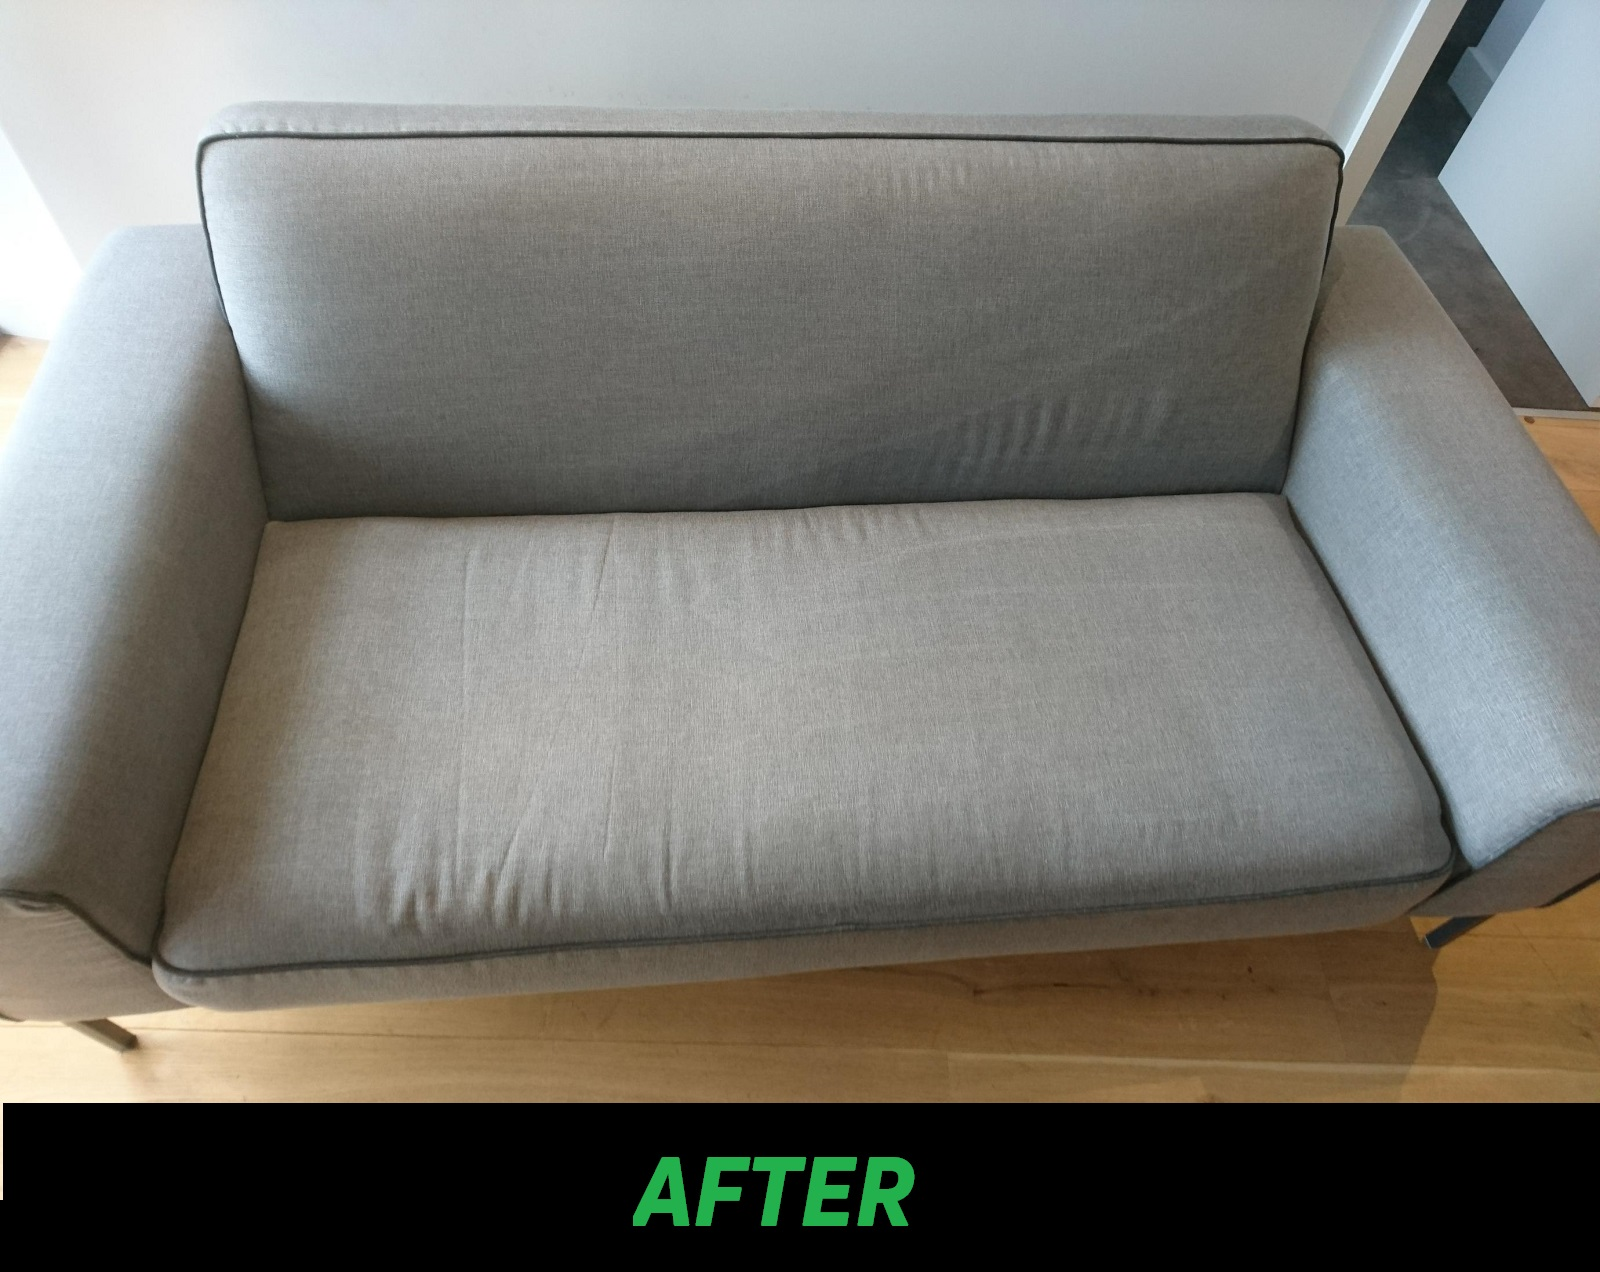 Carpet cleaning after professional